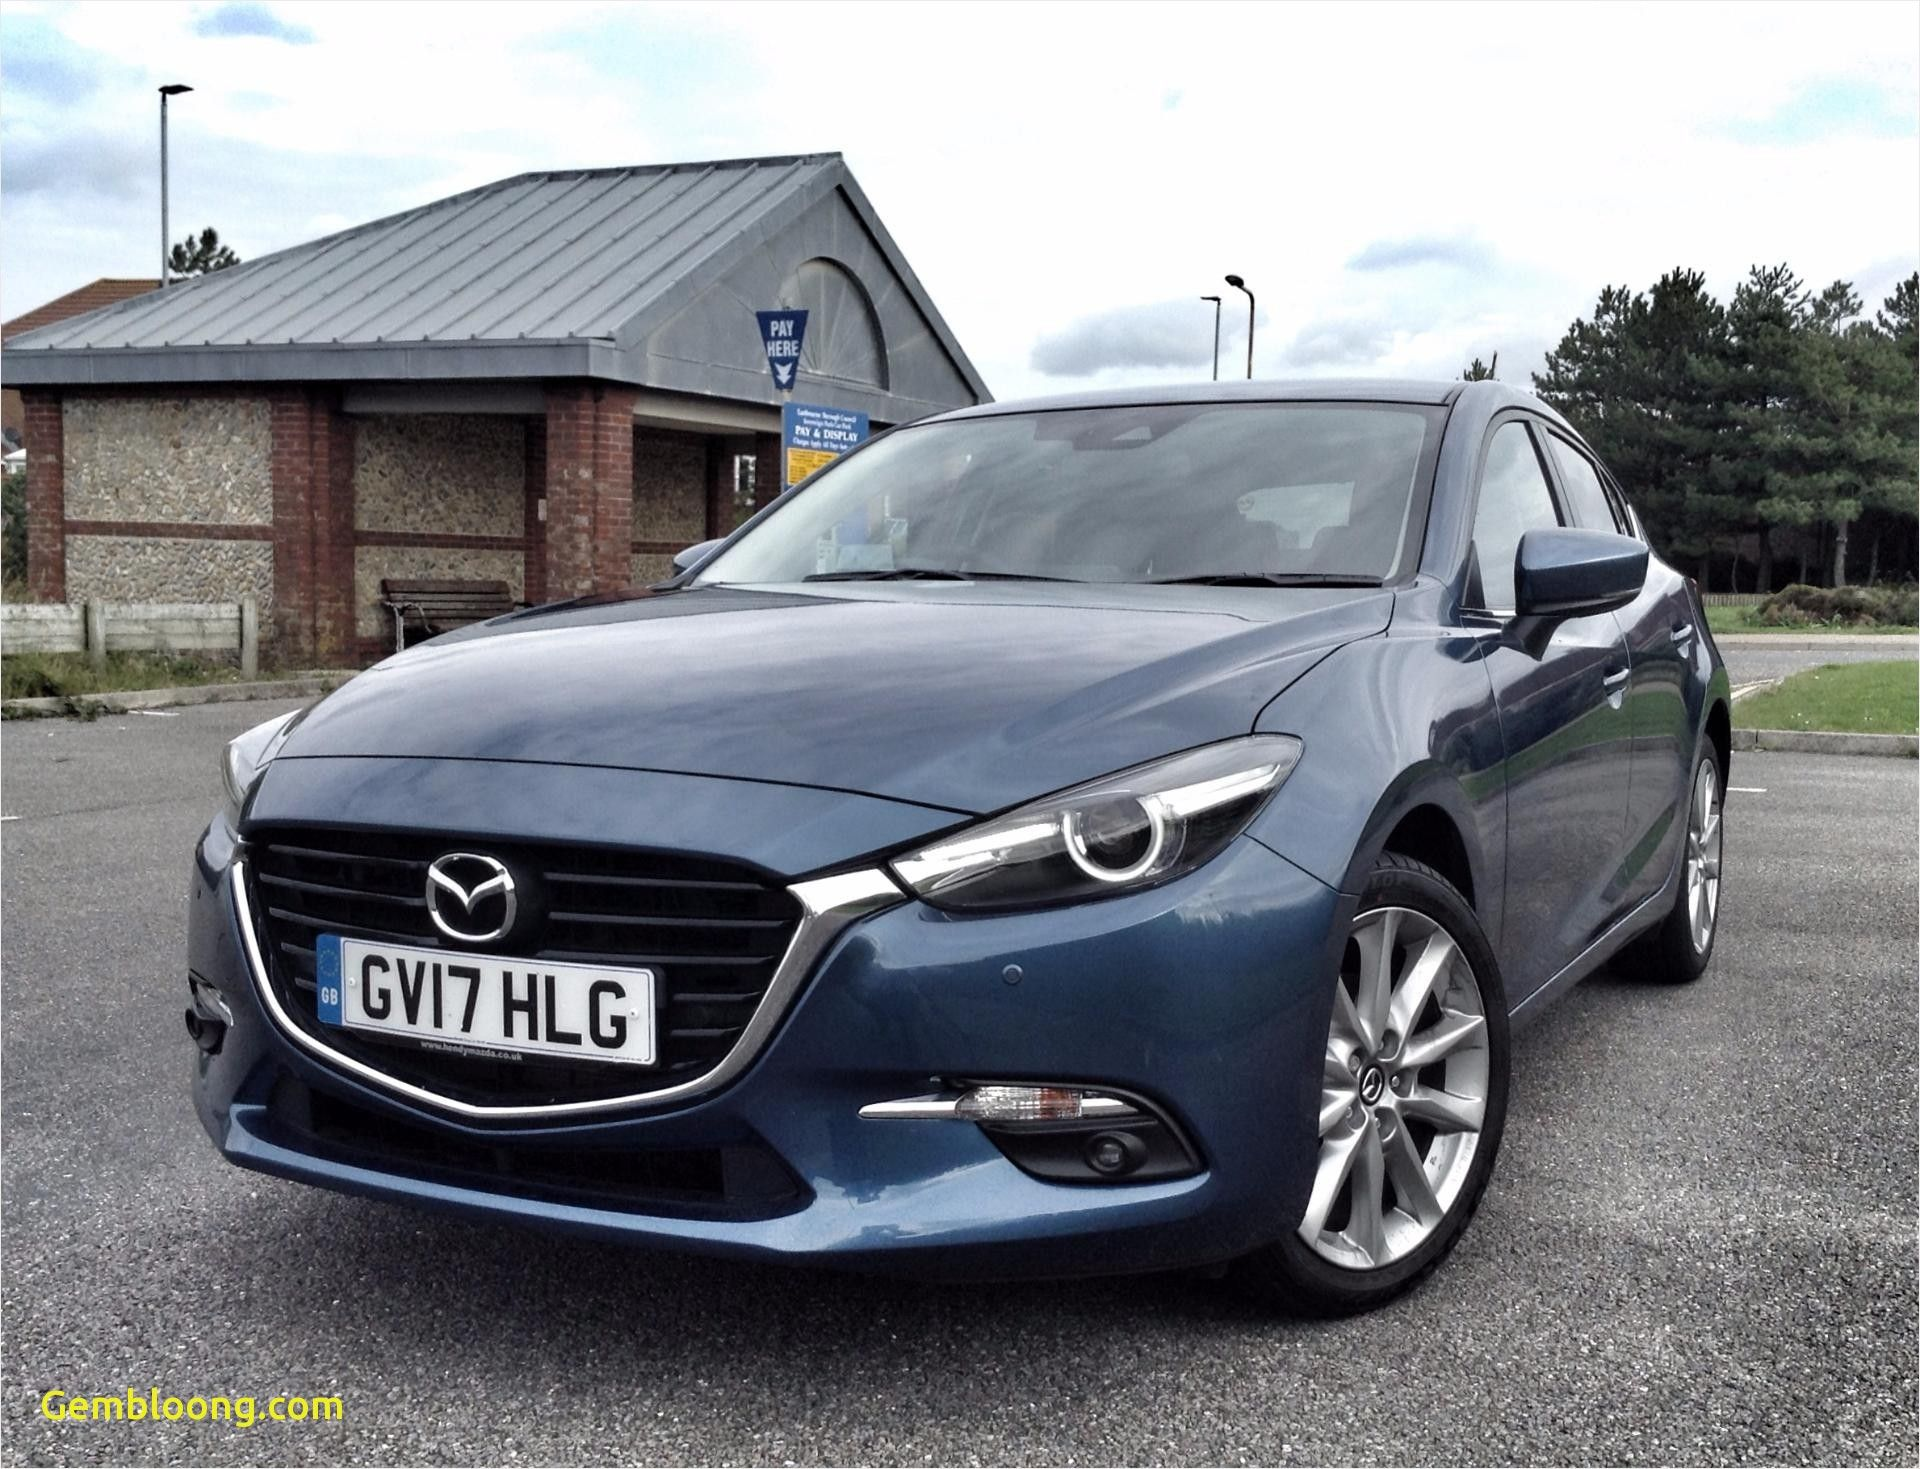 Cars For Sale Near Me For Under 3000 Awesome Used Cars Near Me